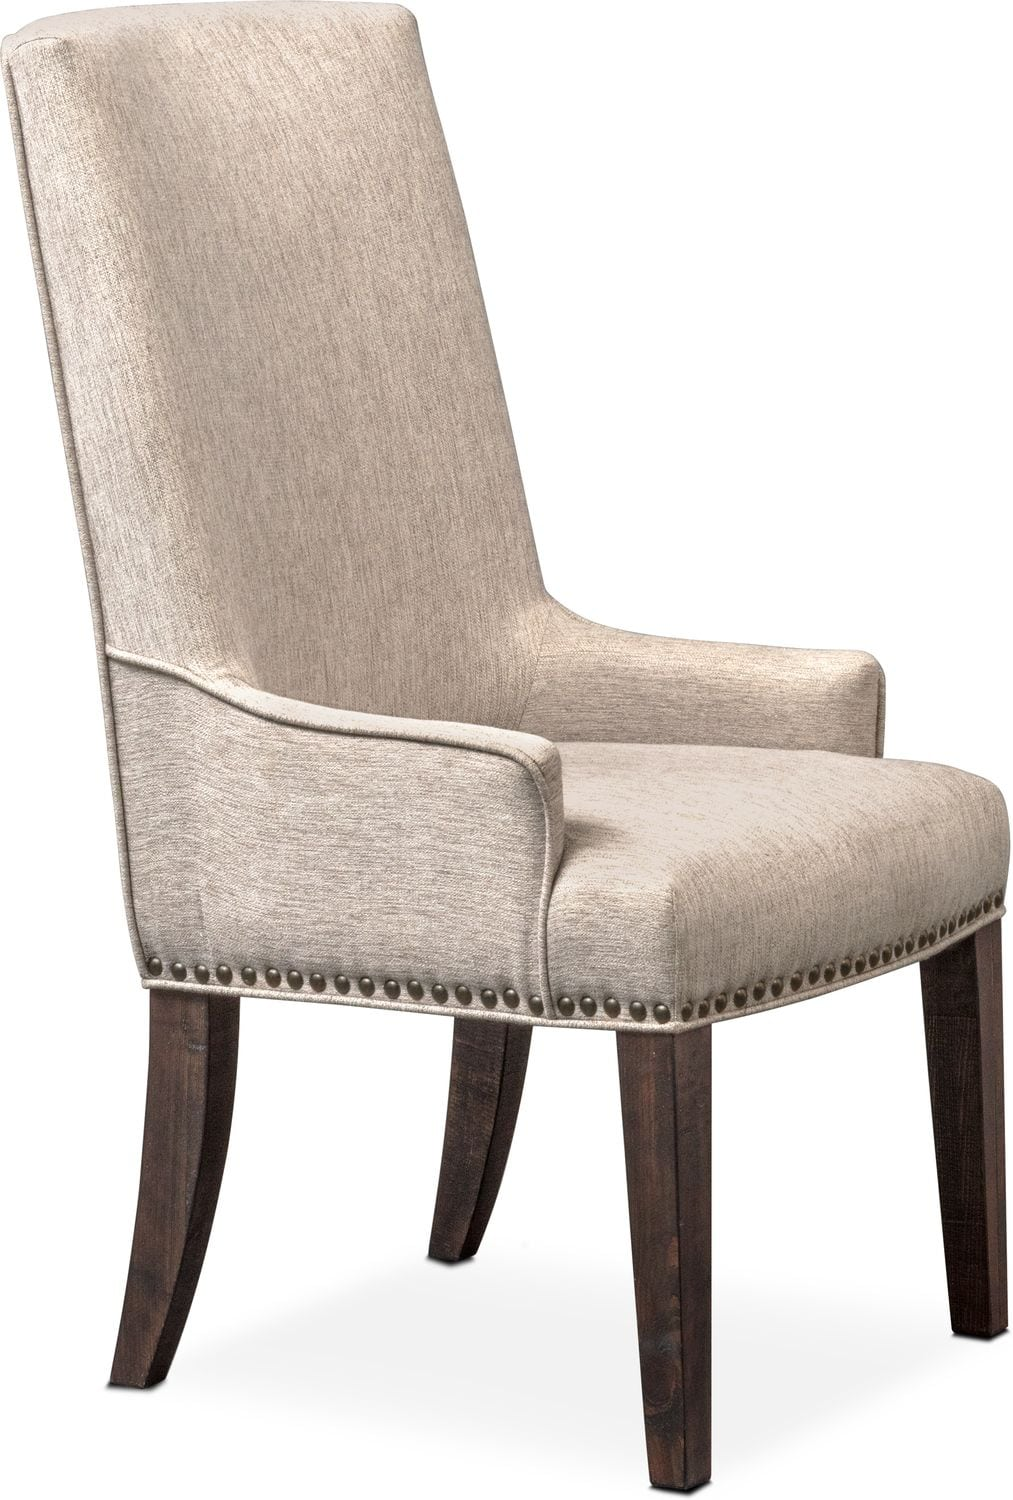 Charthouse Host Chair   Charcoal ...